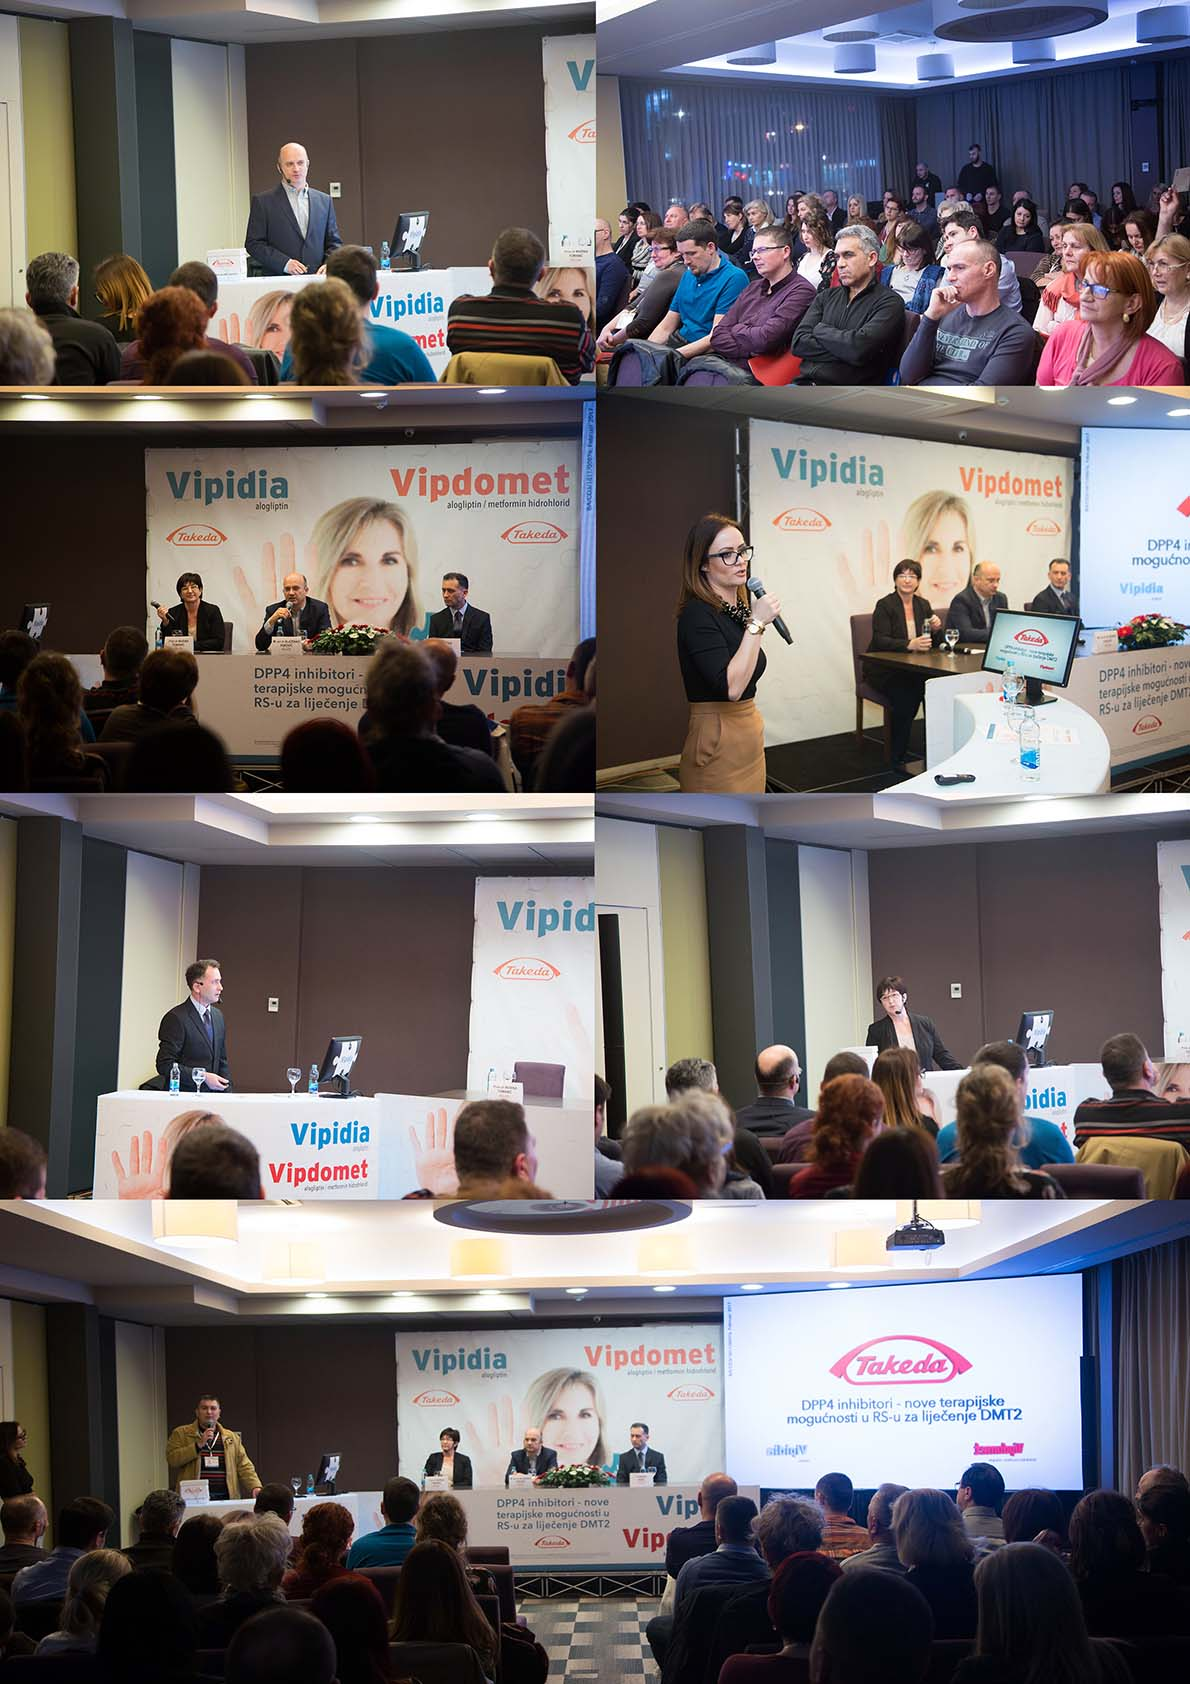 Takeda - DPP4 Inhibitori - Doboj - event photography